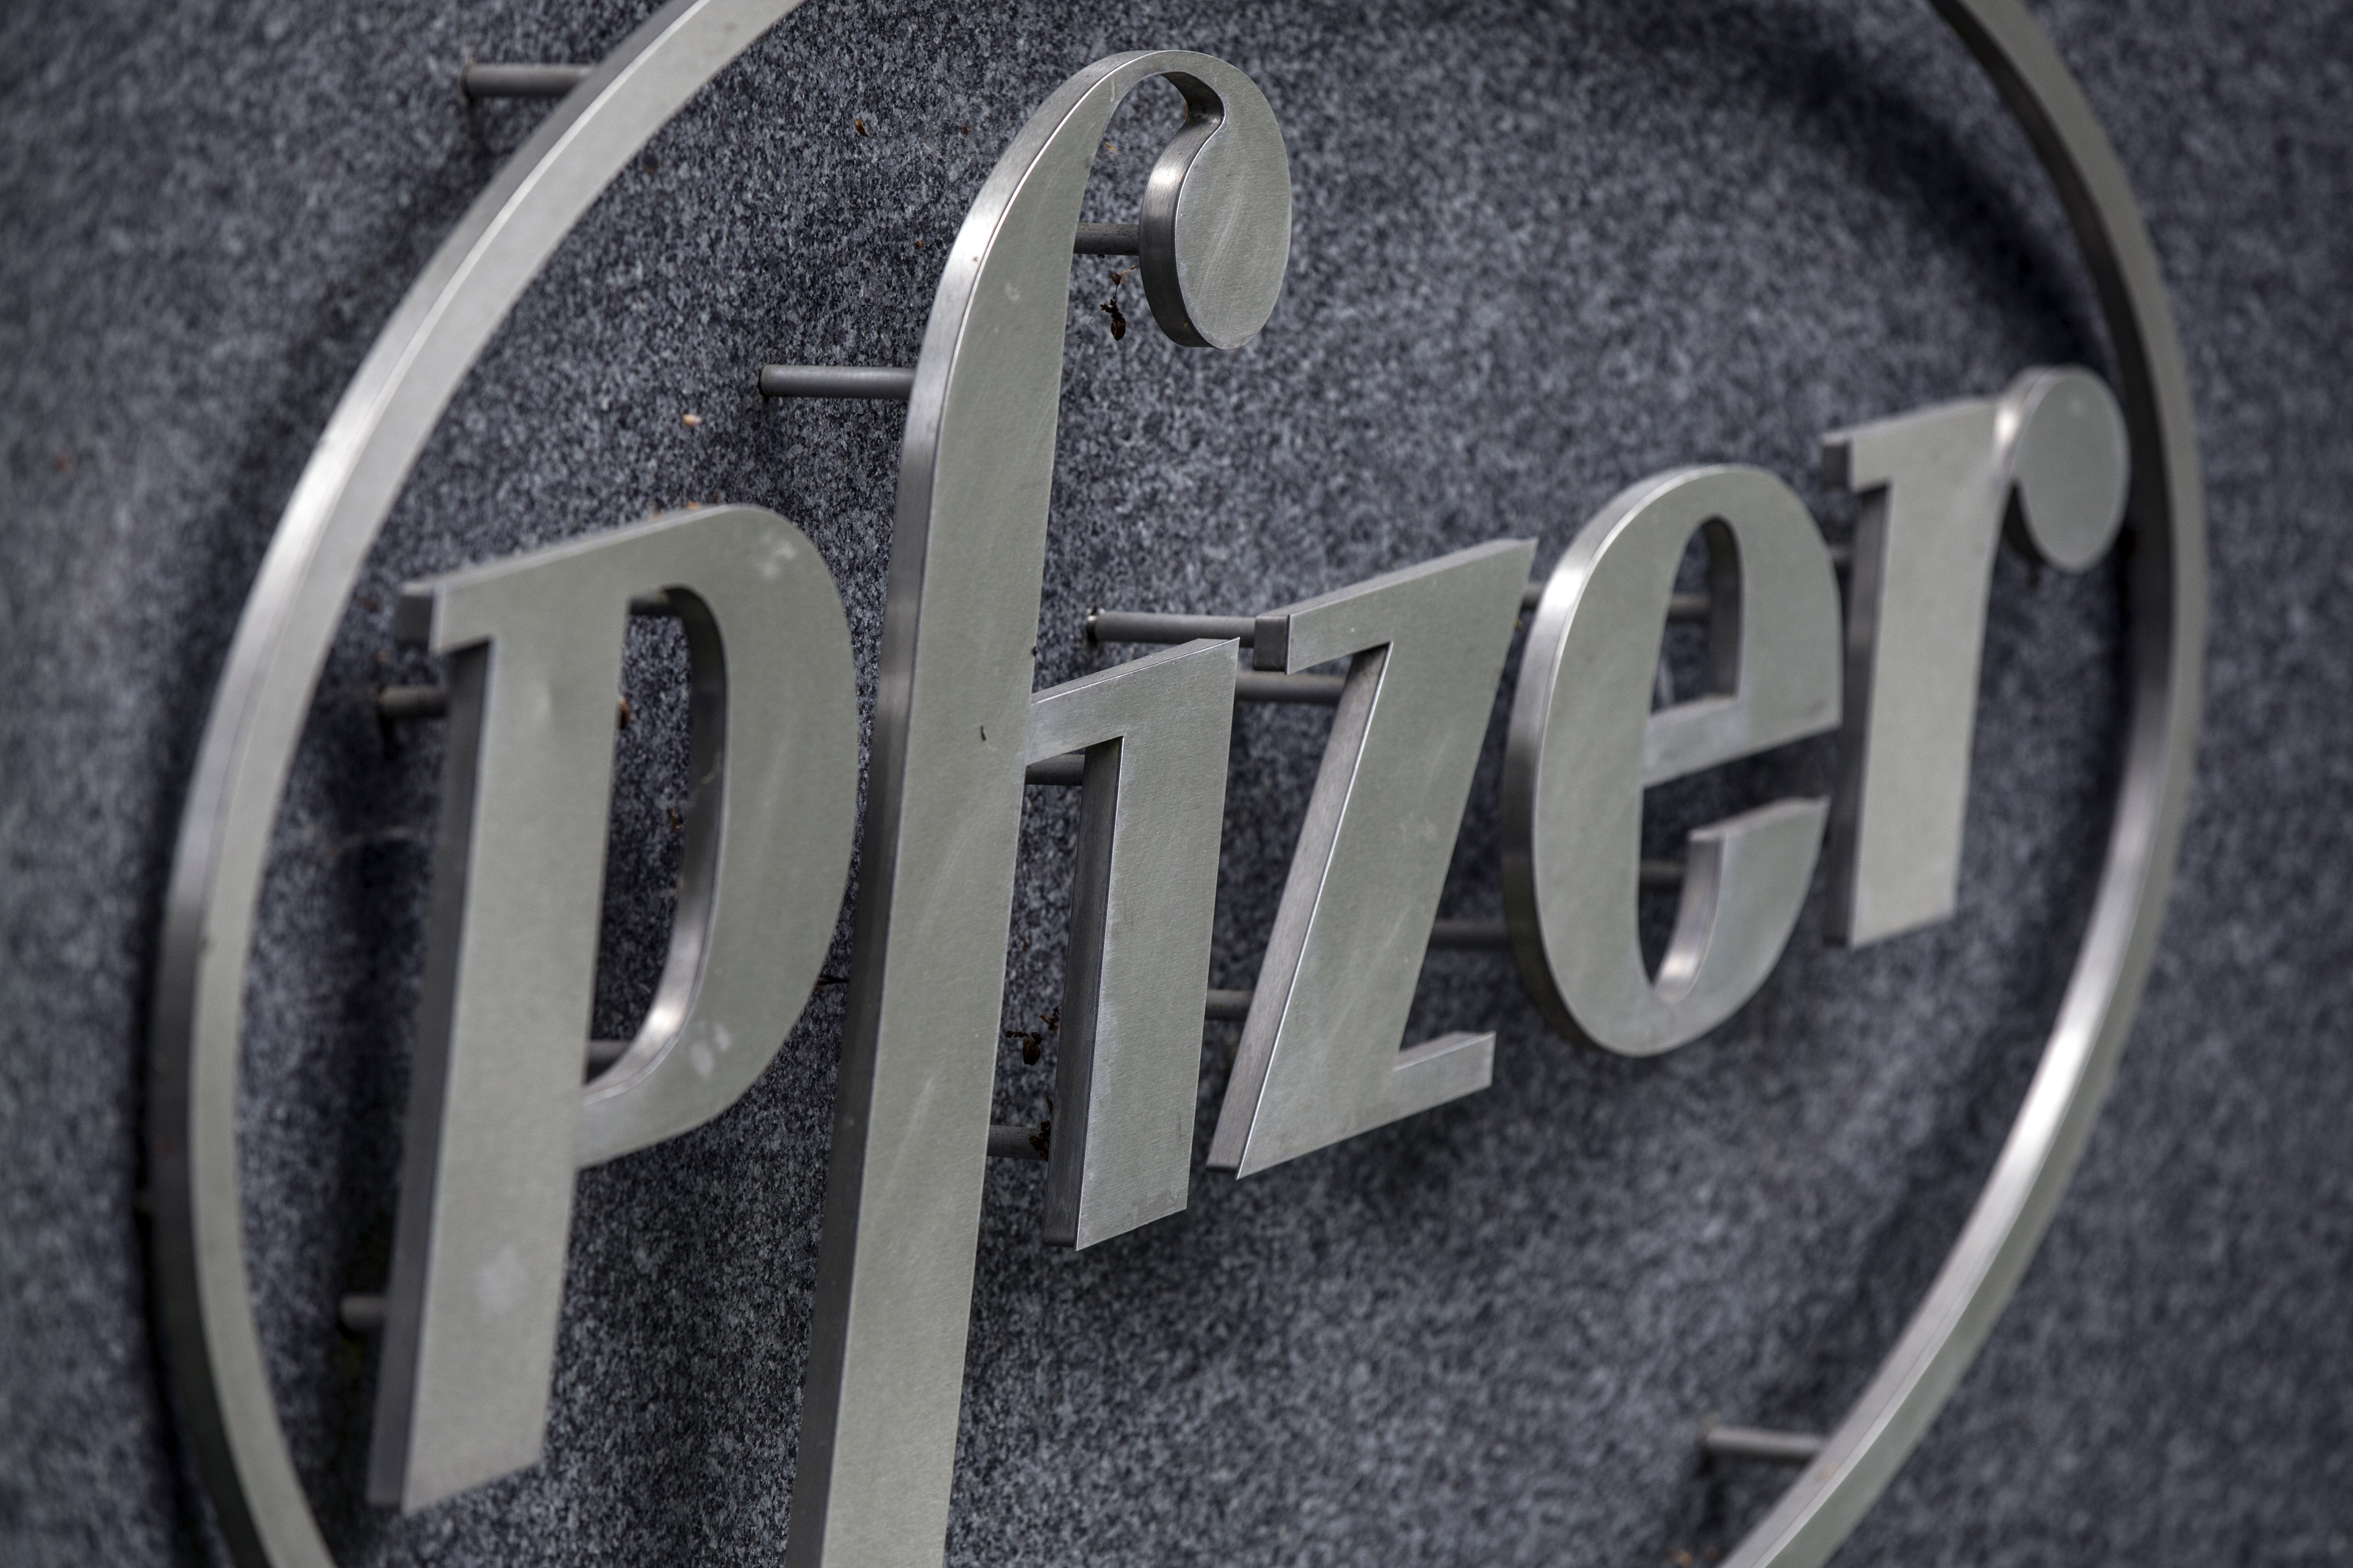 American Pharmaceutical Company Pfizer Propose To Takeover British AstraZeneca